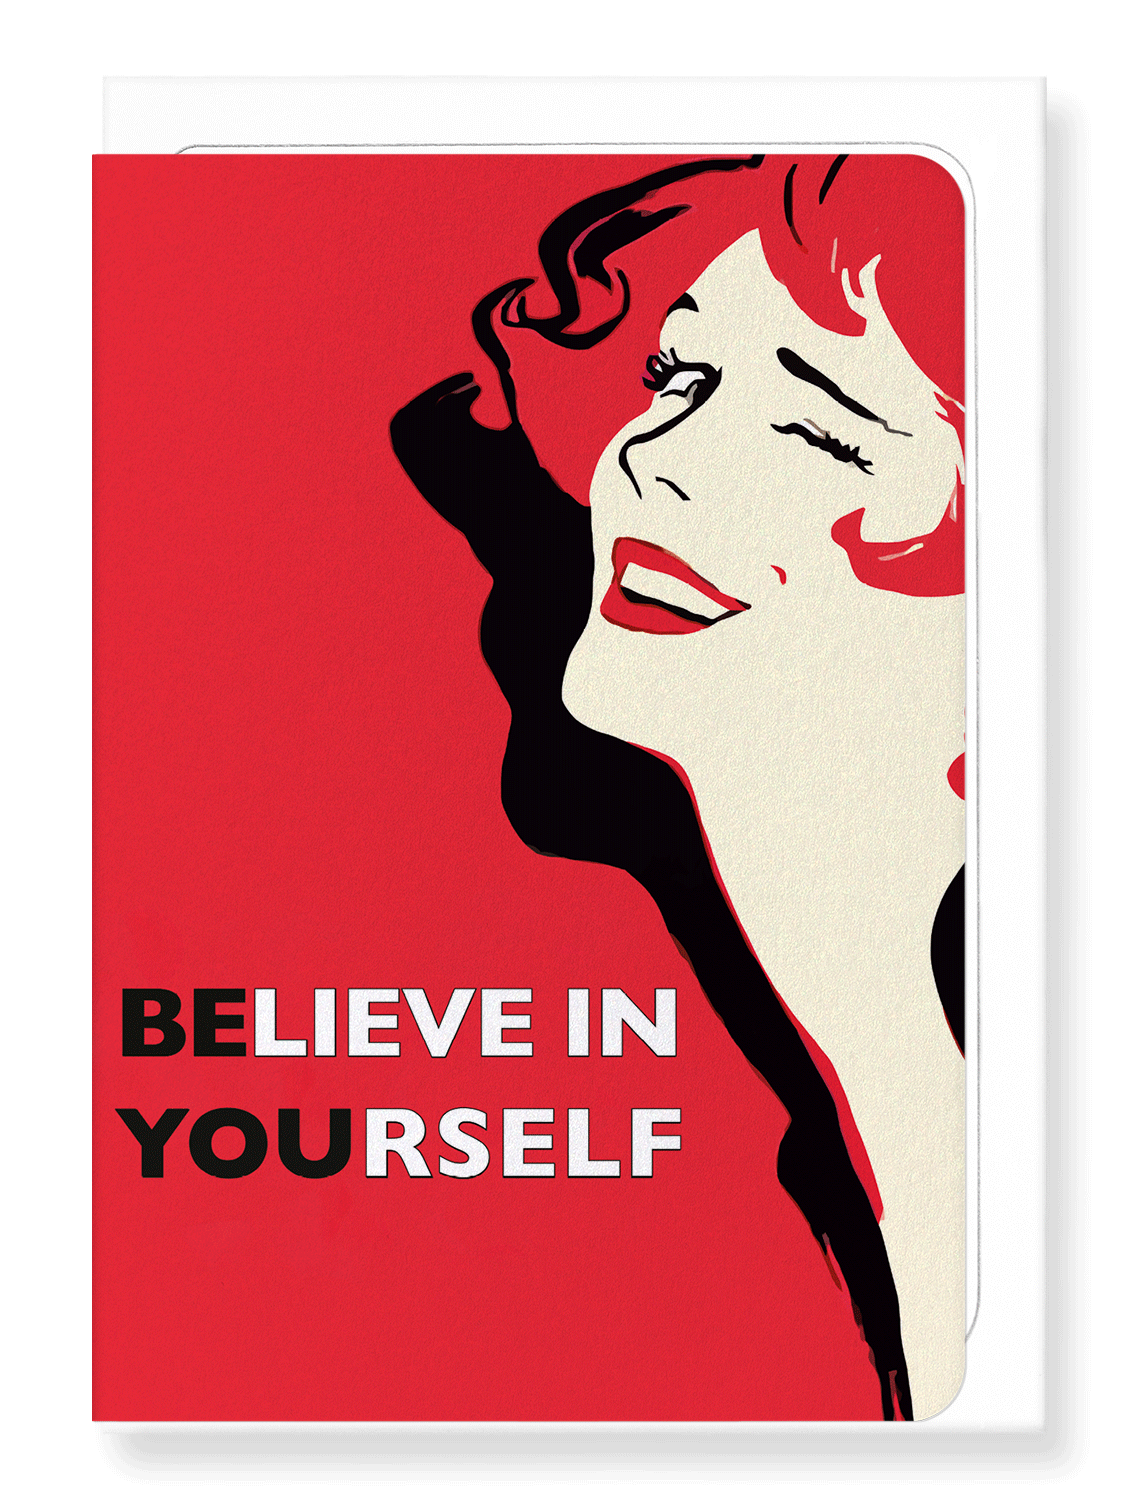 Ezen Designs - Believe in yourself - Greeting Card - Front